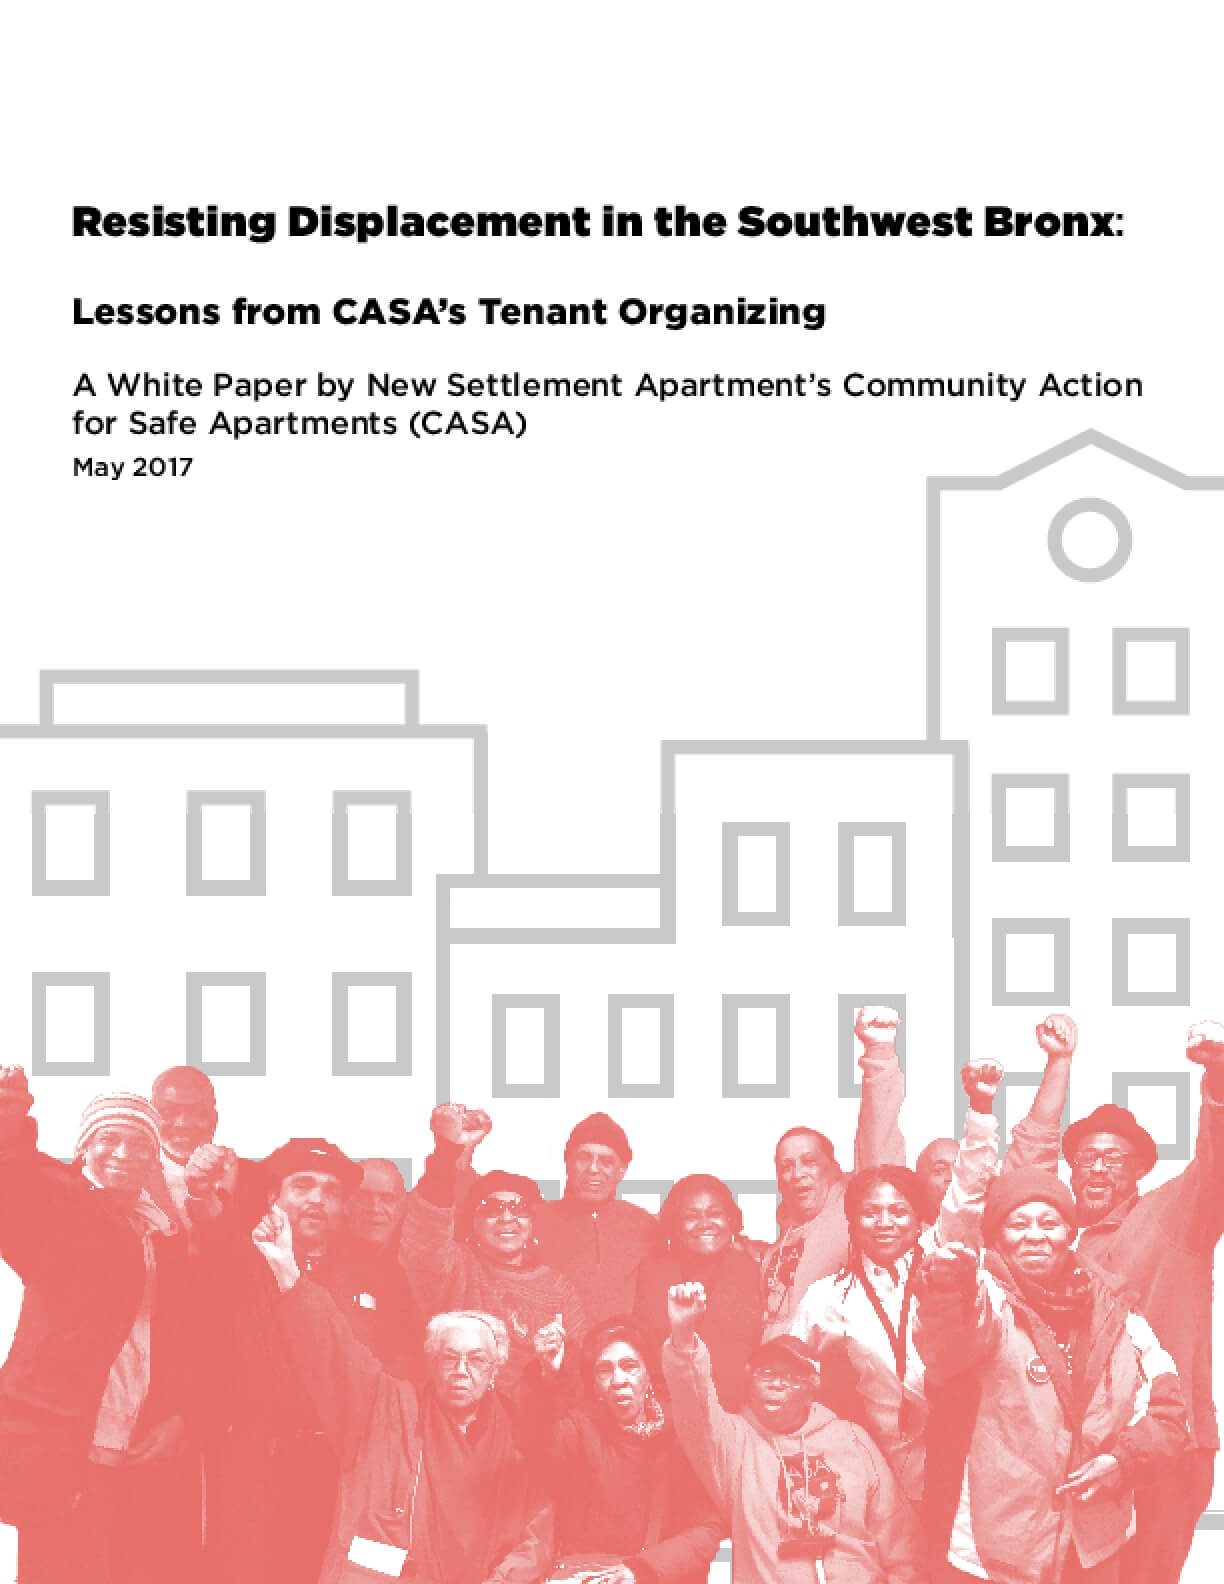 Resisting Displacement in the Southwest Bronx: Lessons from CASA's Tenant Organizing